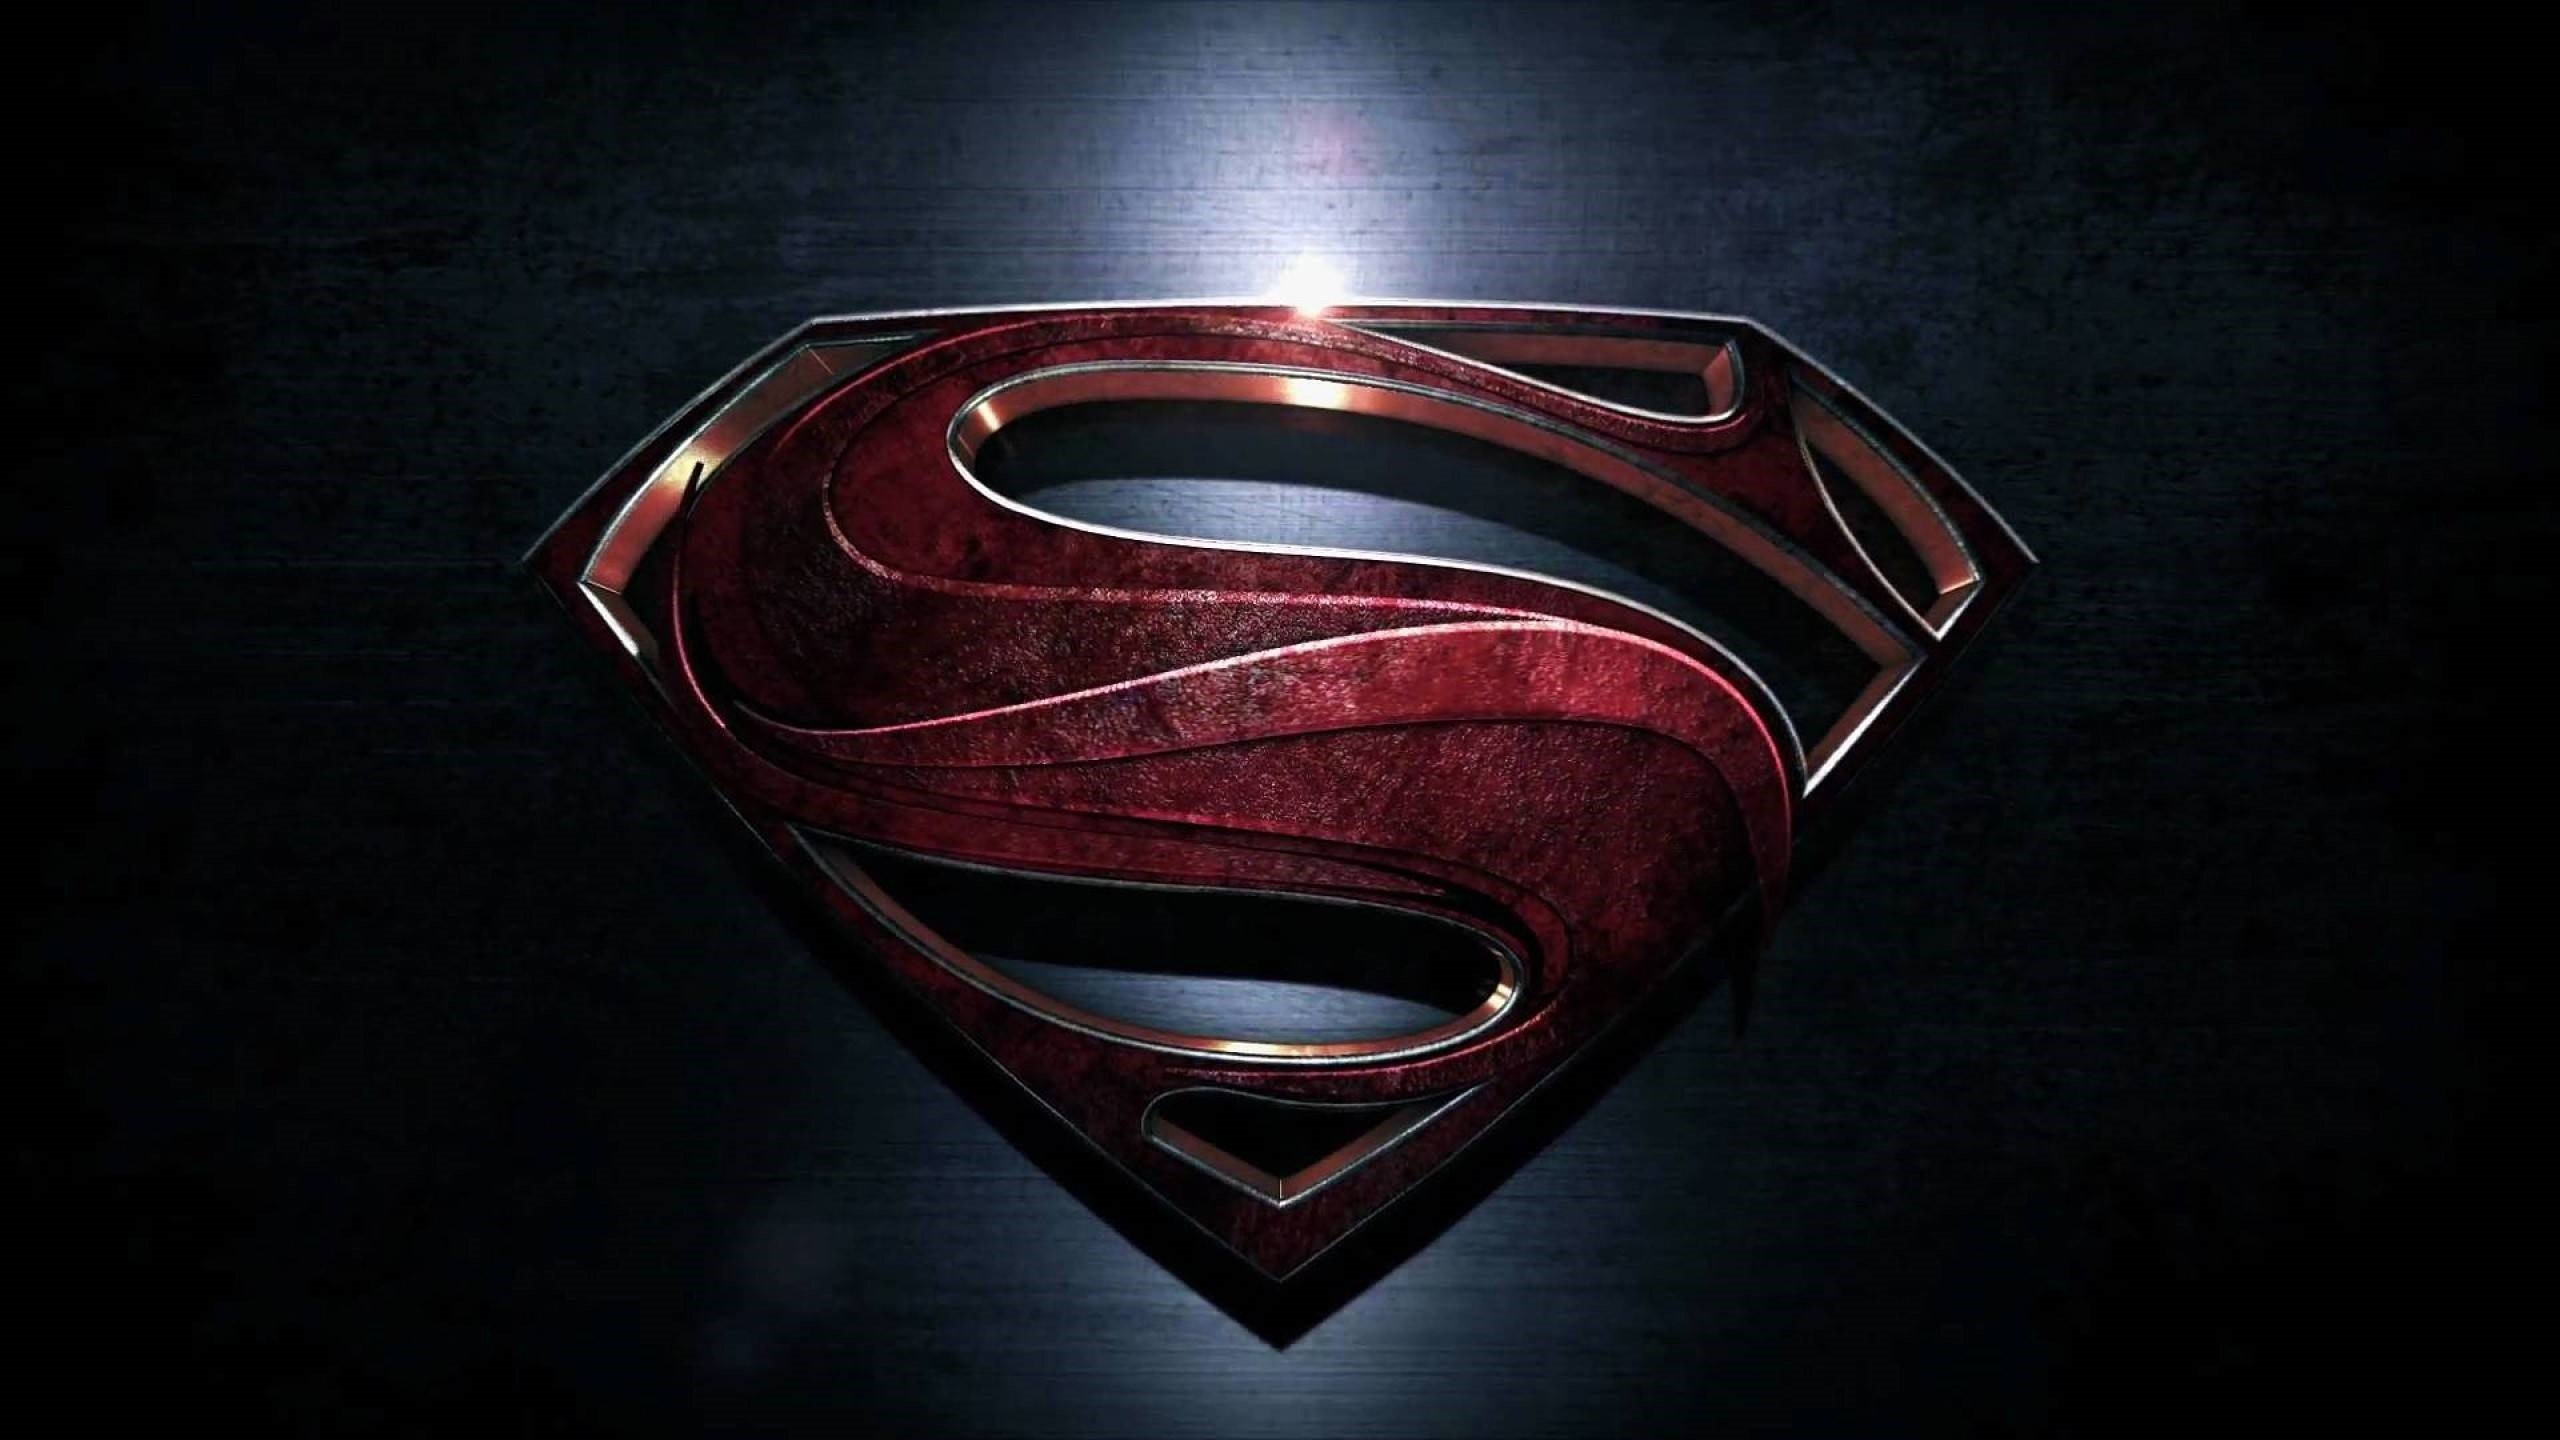 2560x1440 Desktop Backgrounds: Superman, by Kip Ziebarth,